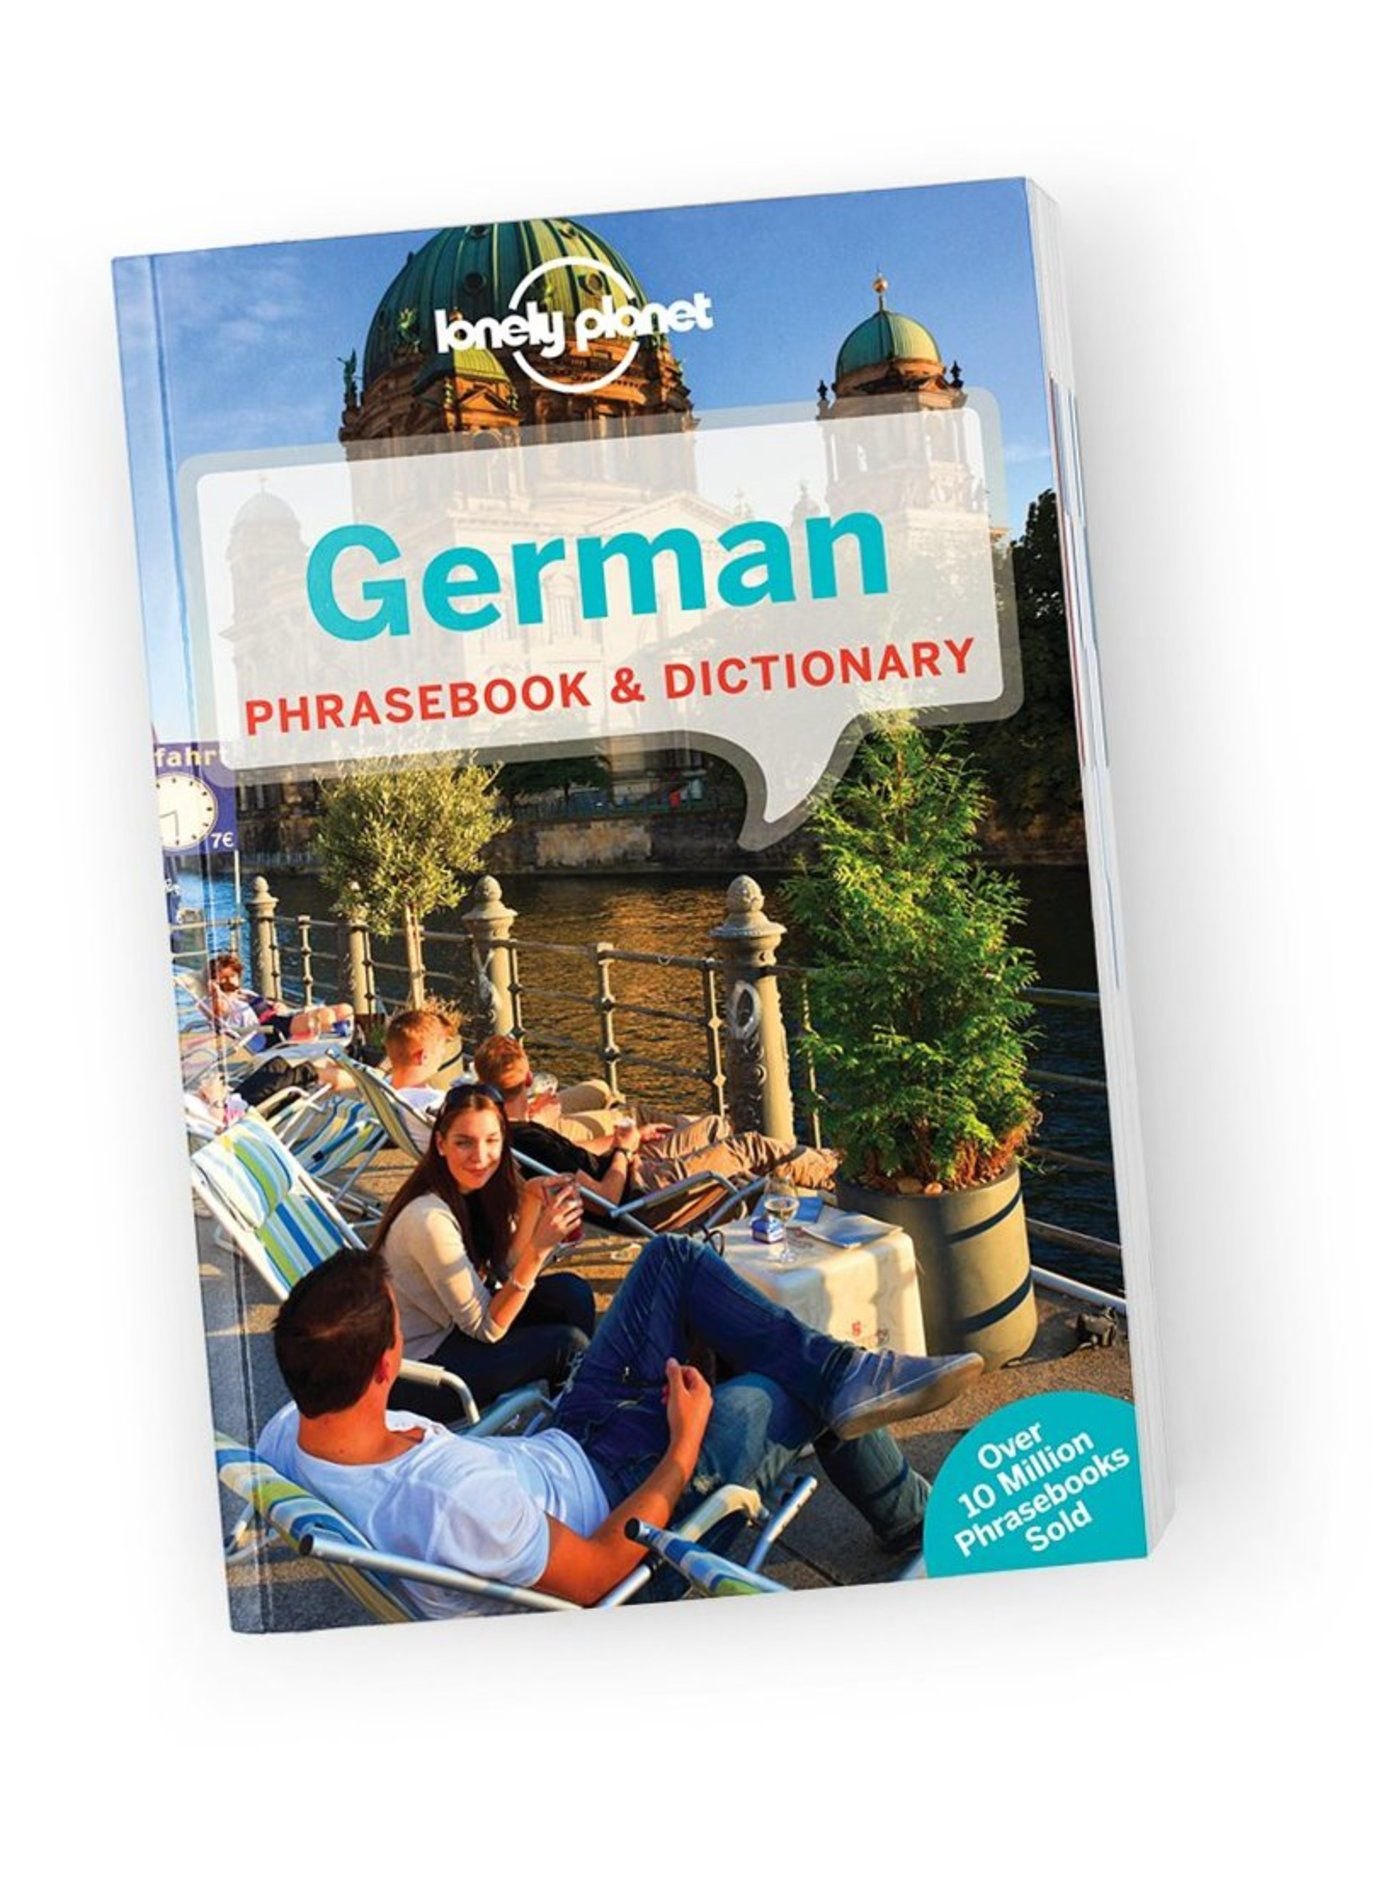 German Phrasebook & Dictionary - 6th edition